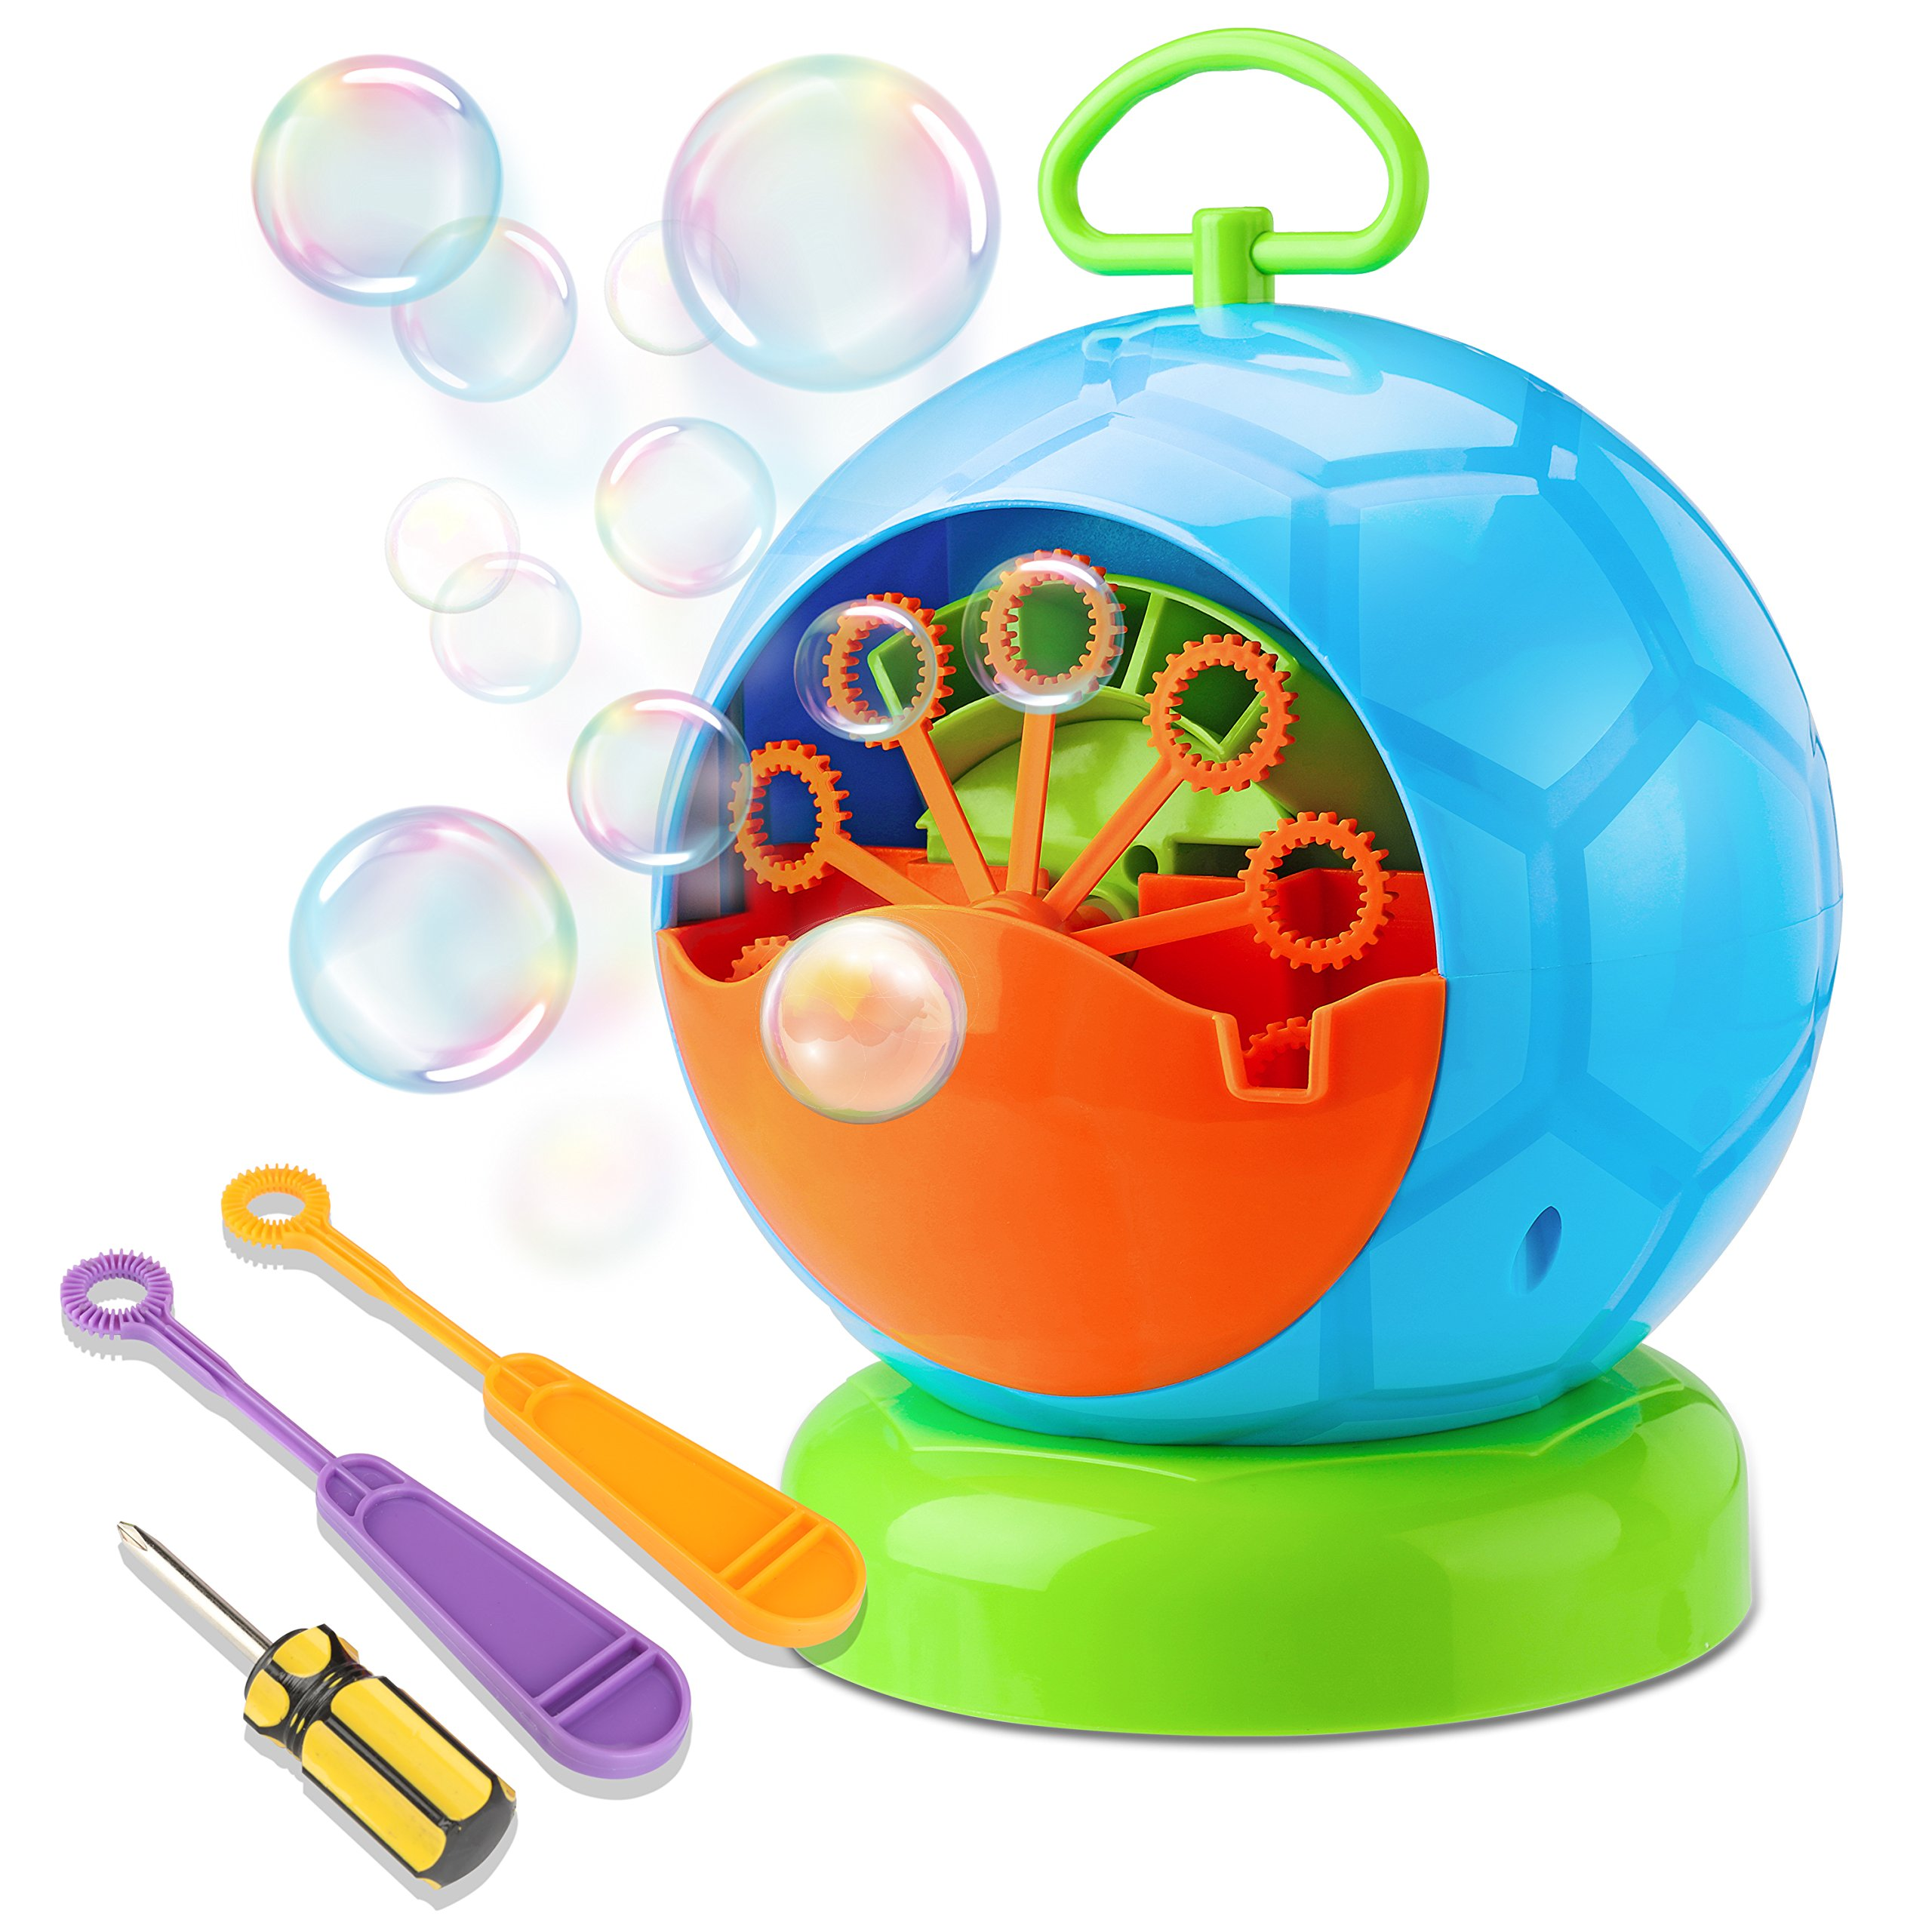 Fansteck Bubble Machine, Durable Portable Bubble Blower, New Automatic Bubble Maker 800+ Bubble Machine for Kids, Two Extra Manual Bubble Wands Gifts, Easy to Use for Christmas, Parties, Wedding